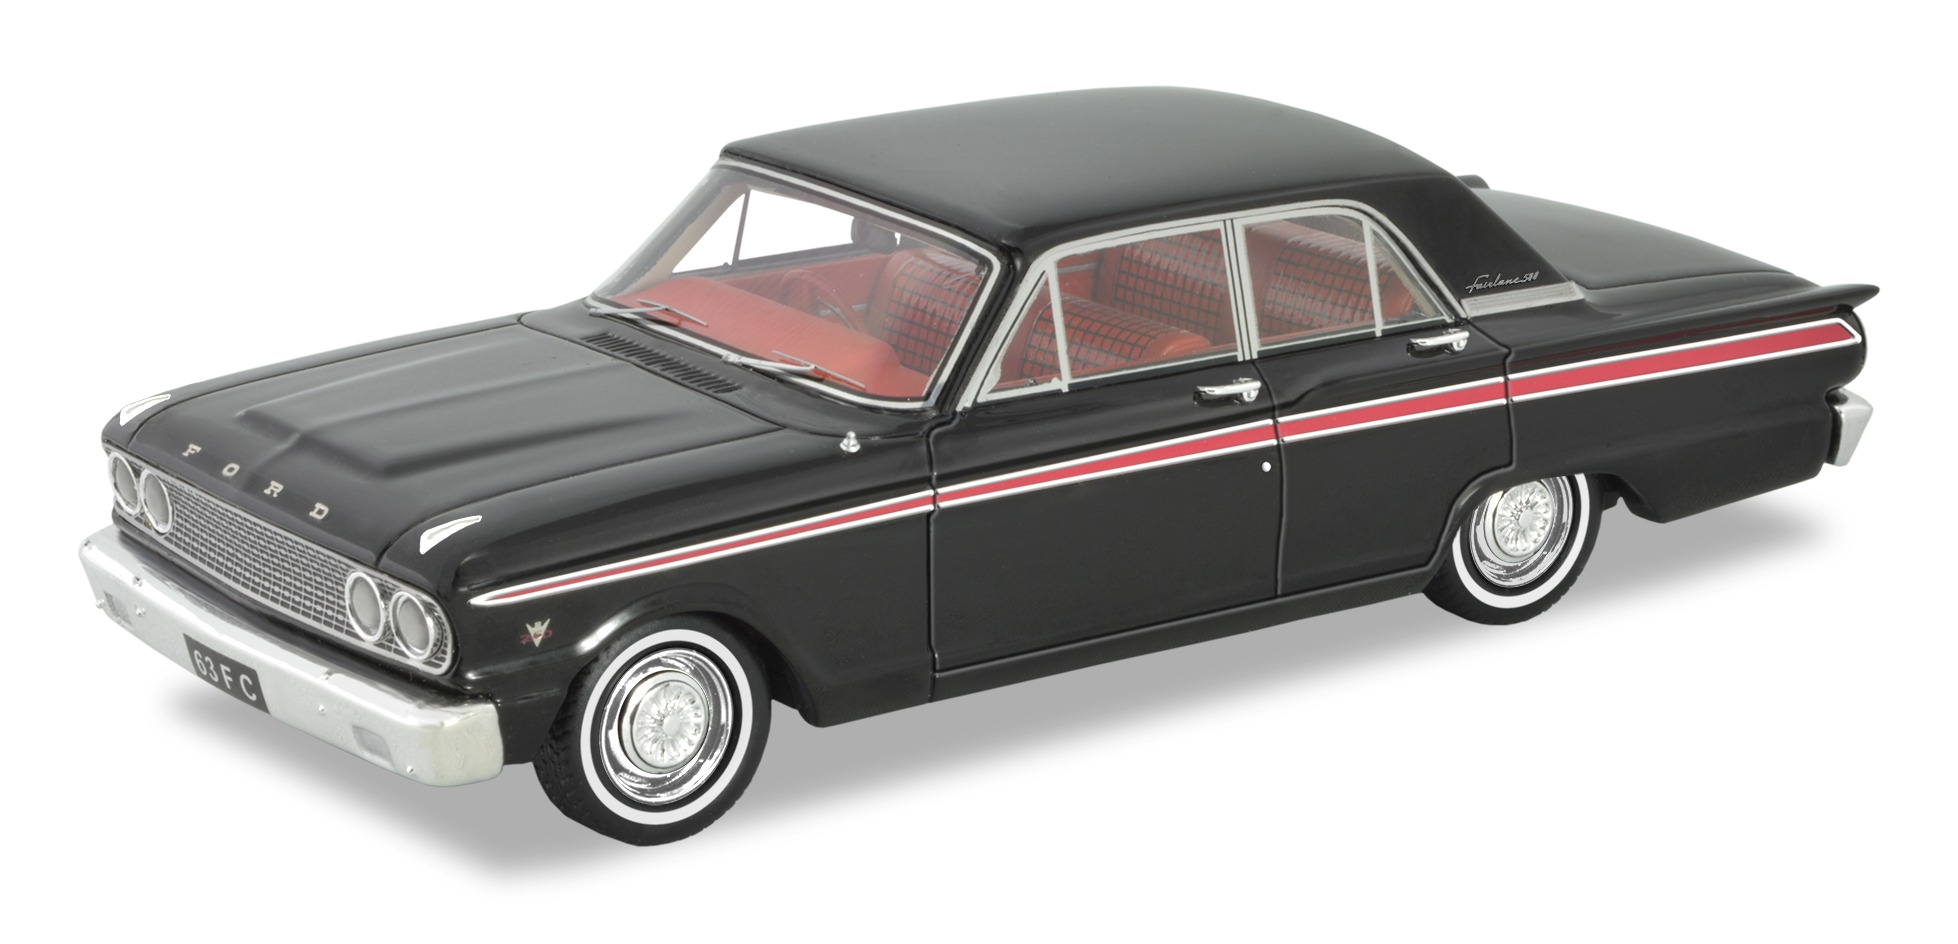 1963 Ford Fairlane Compact – Black/Red